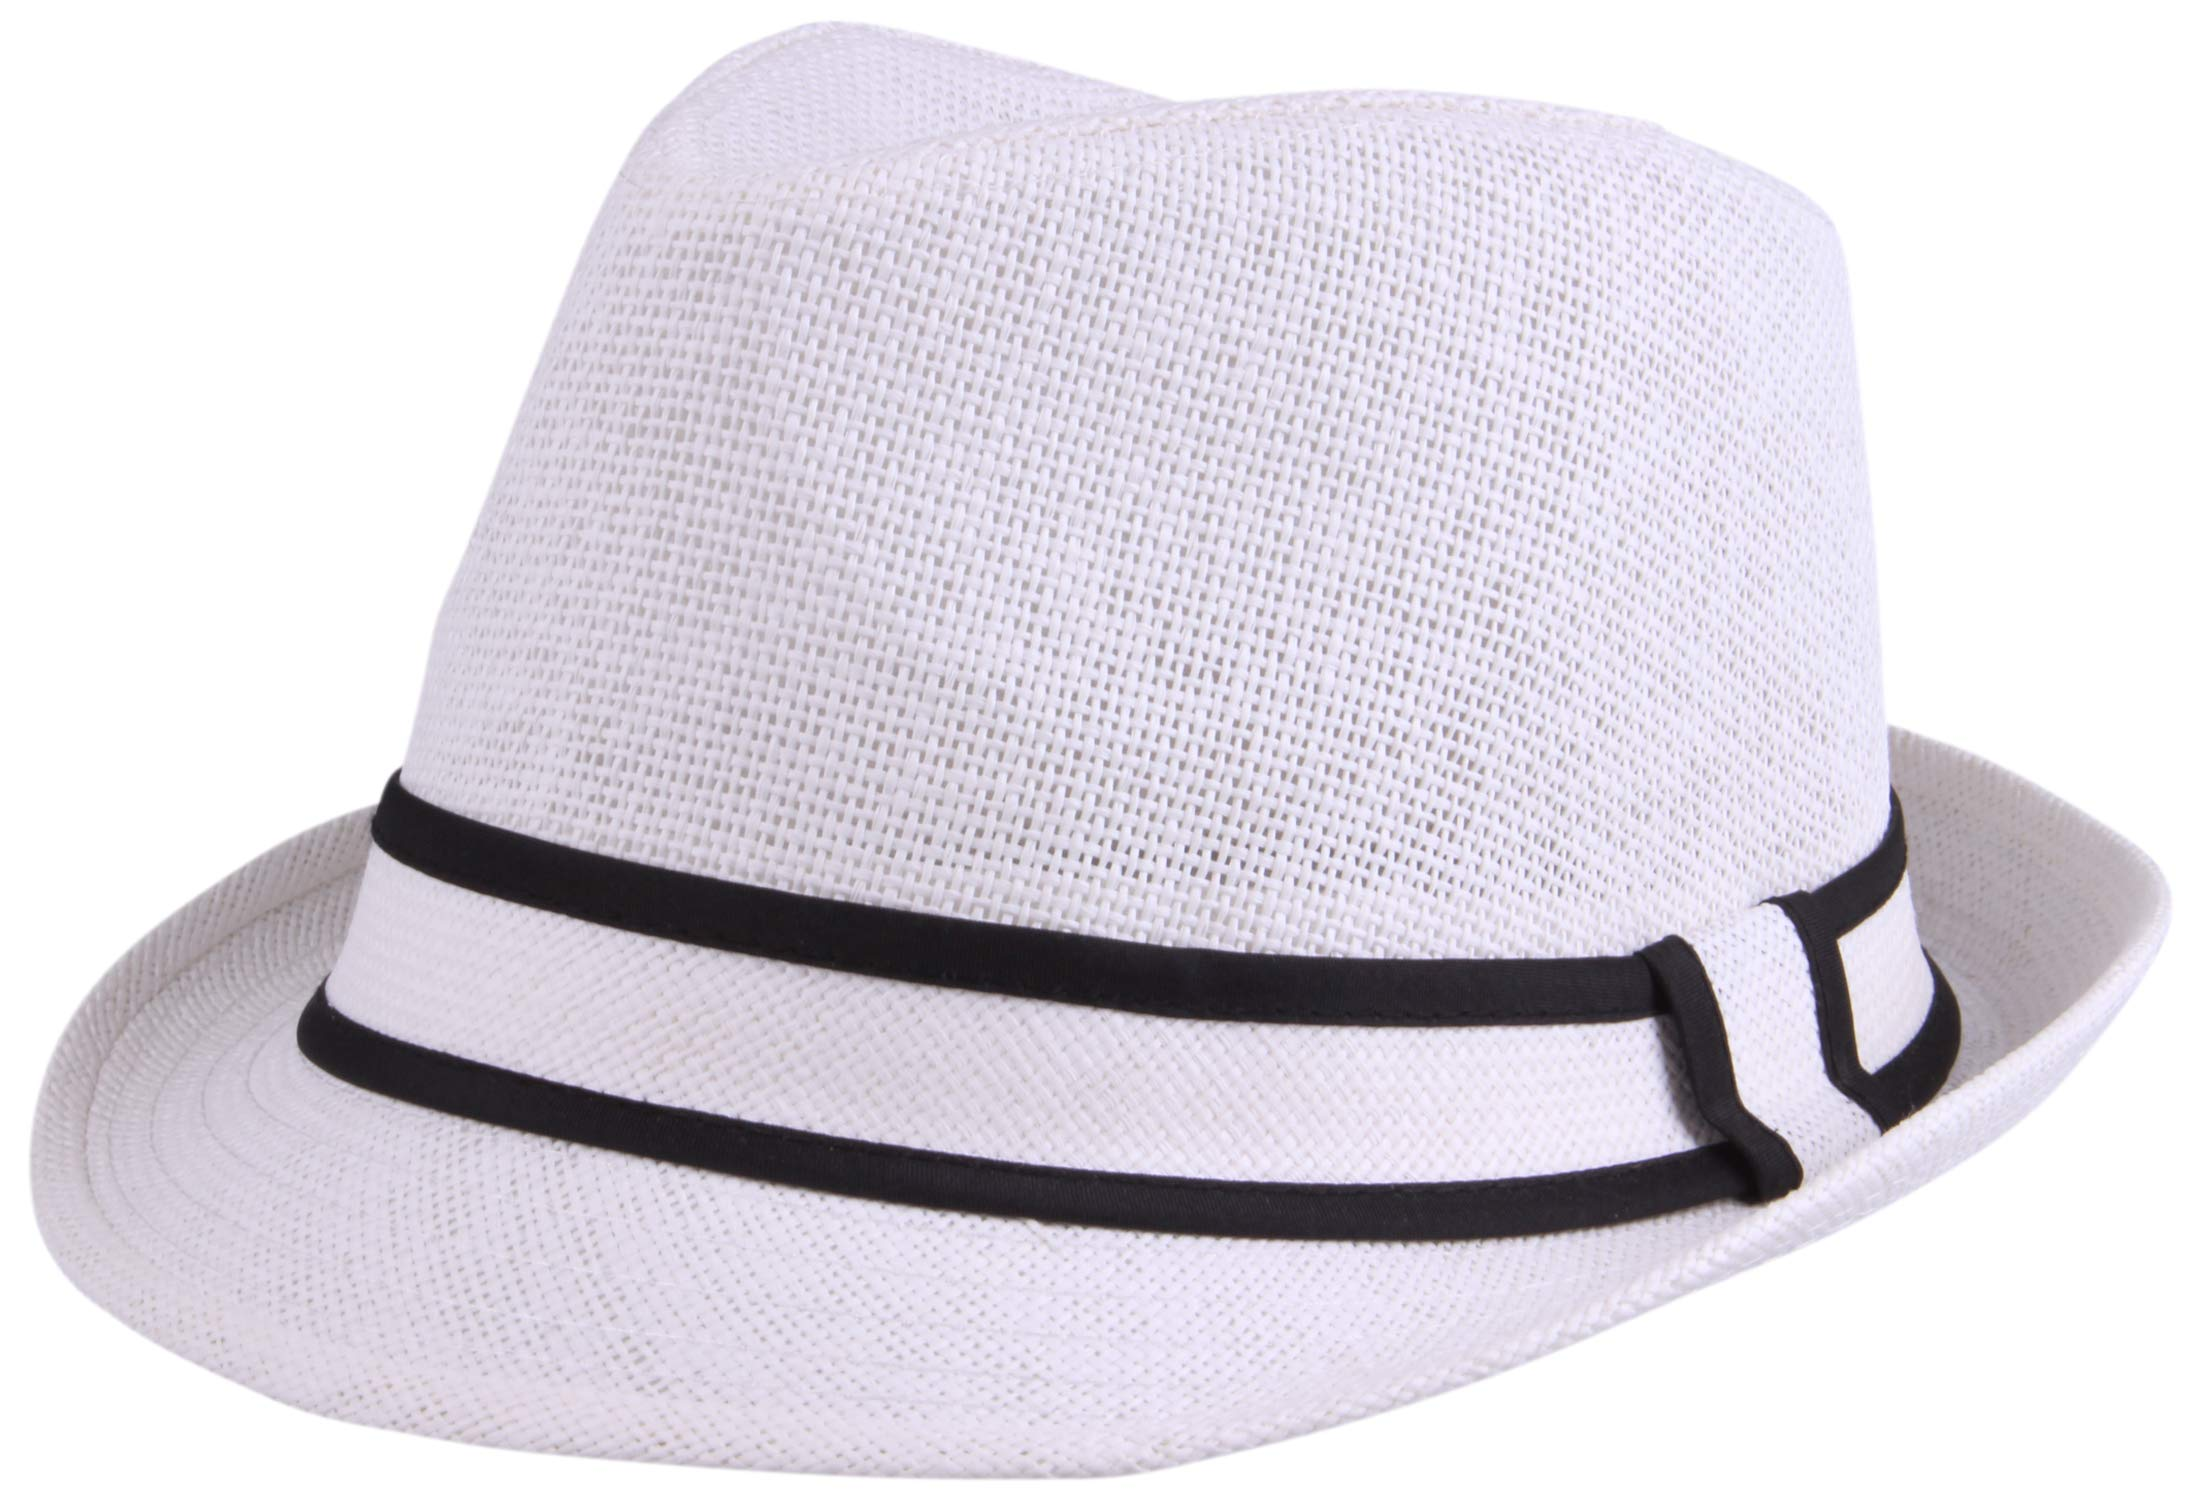 Enimay Unisex Vintage Fedora Hat Classic Timeless Light Weight 2120 - White Size S/M